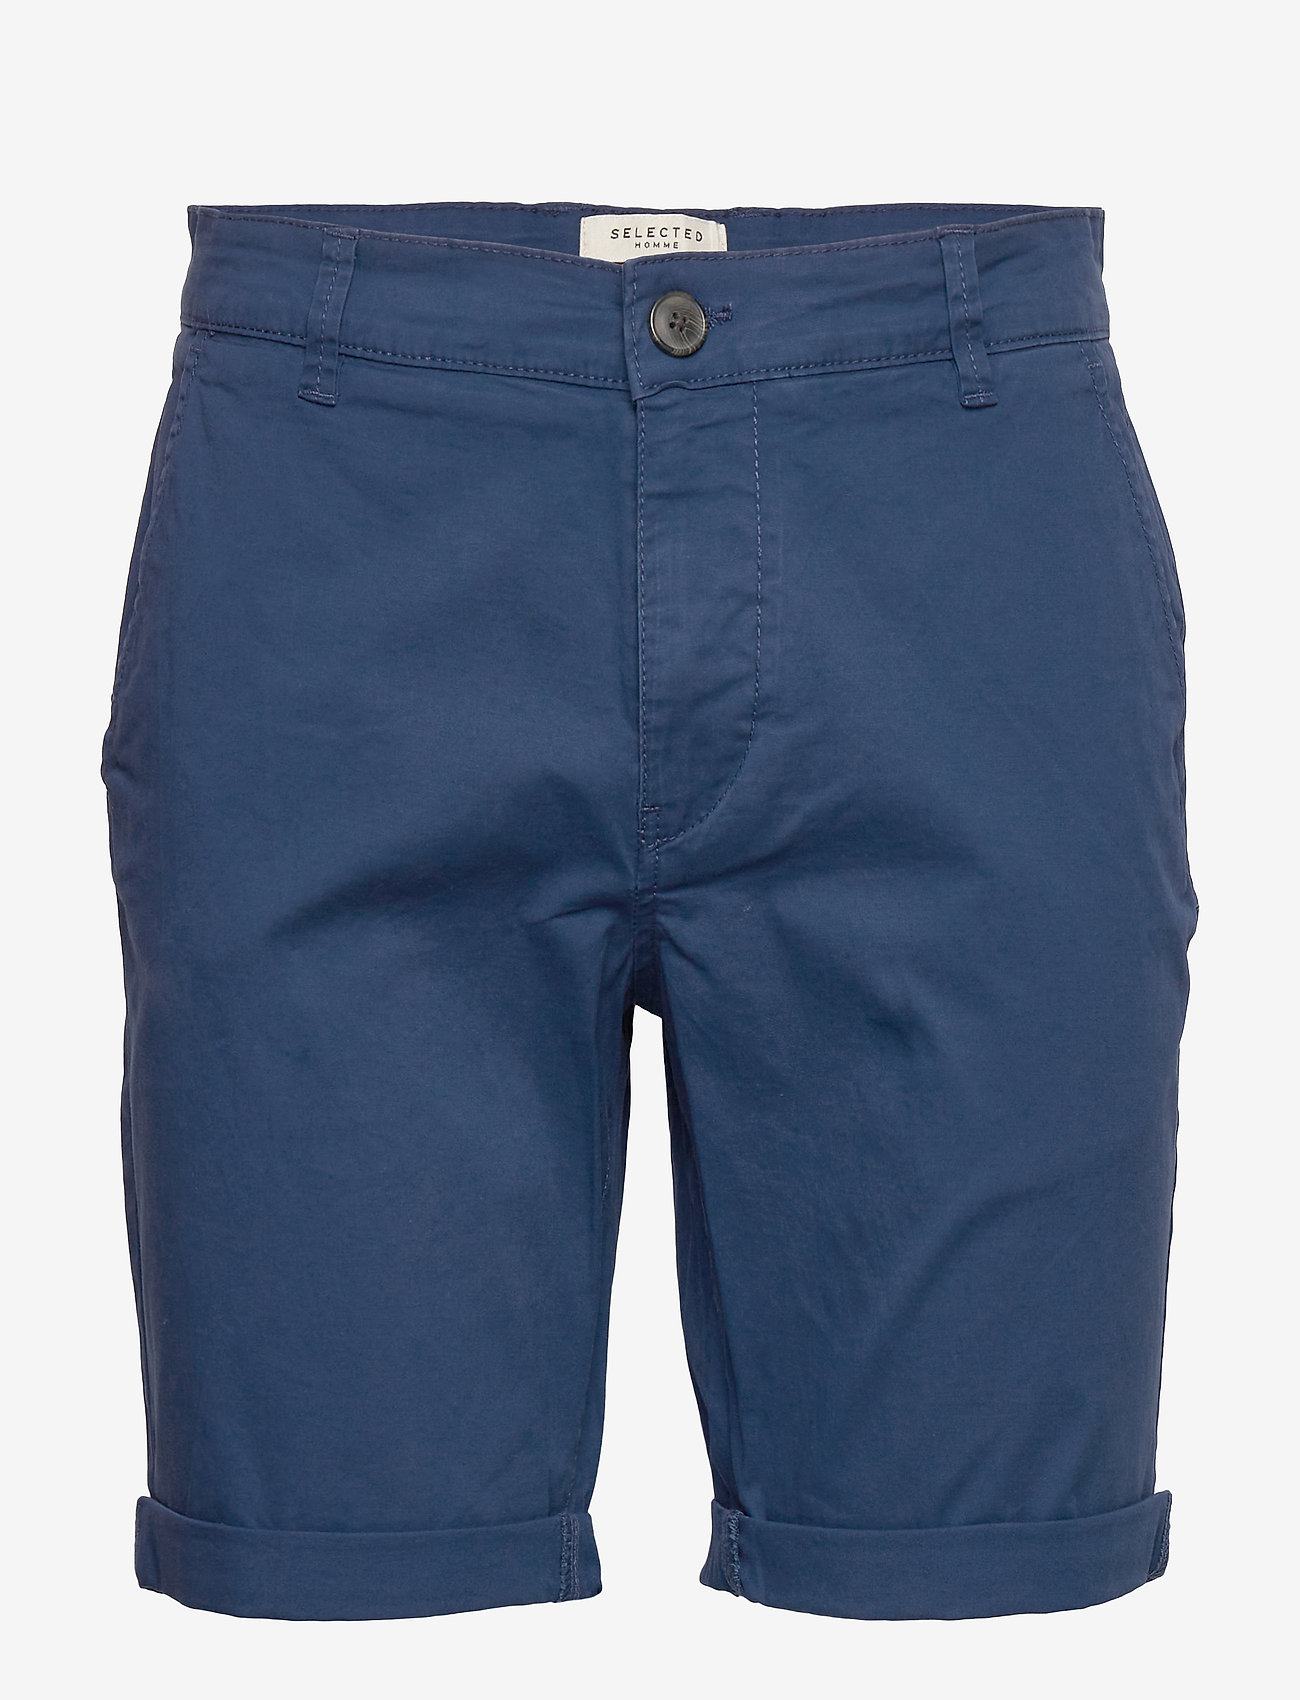 Selected Homme - SLHSTRAIGHT-PARIS SHORTS W NOOS - chino's shorts - estate blue - 0